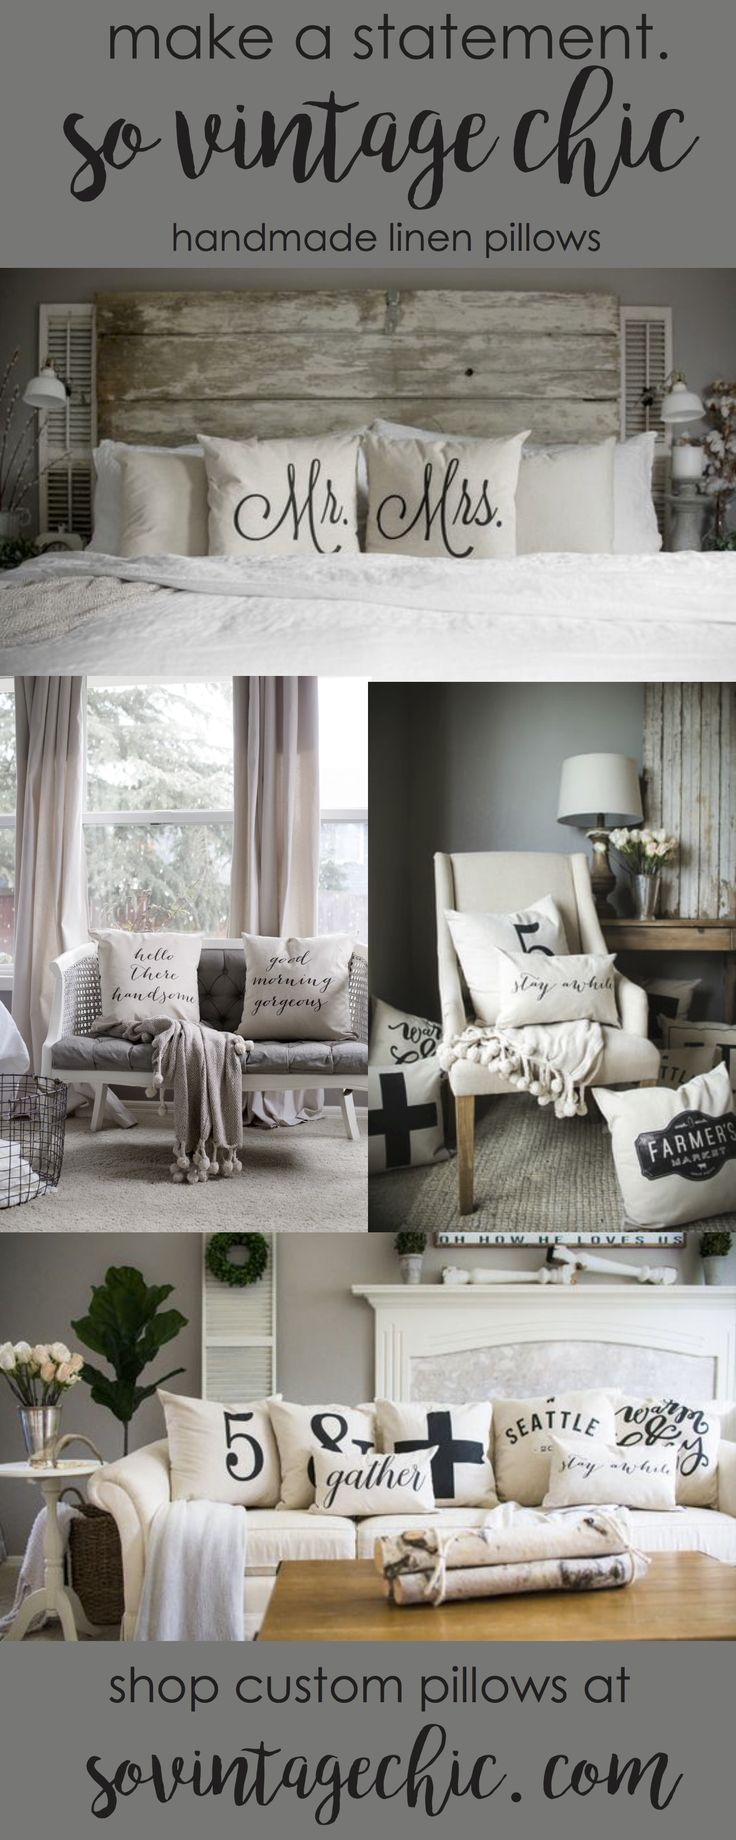 Make a statement with gorgeous handmade pillows from So Vintage Chic! Click to…